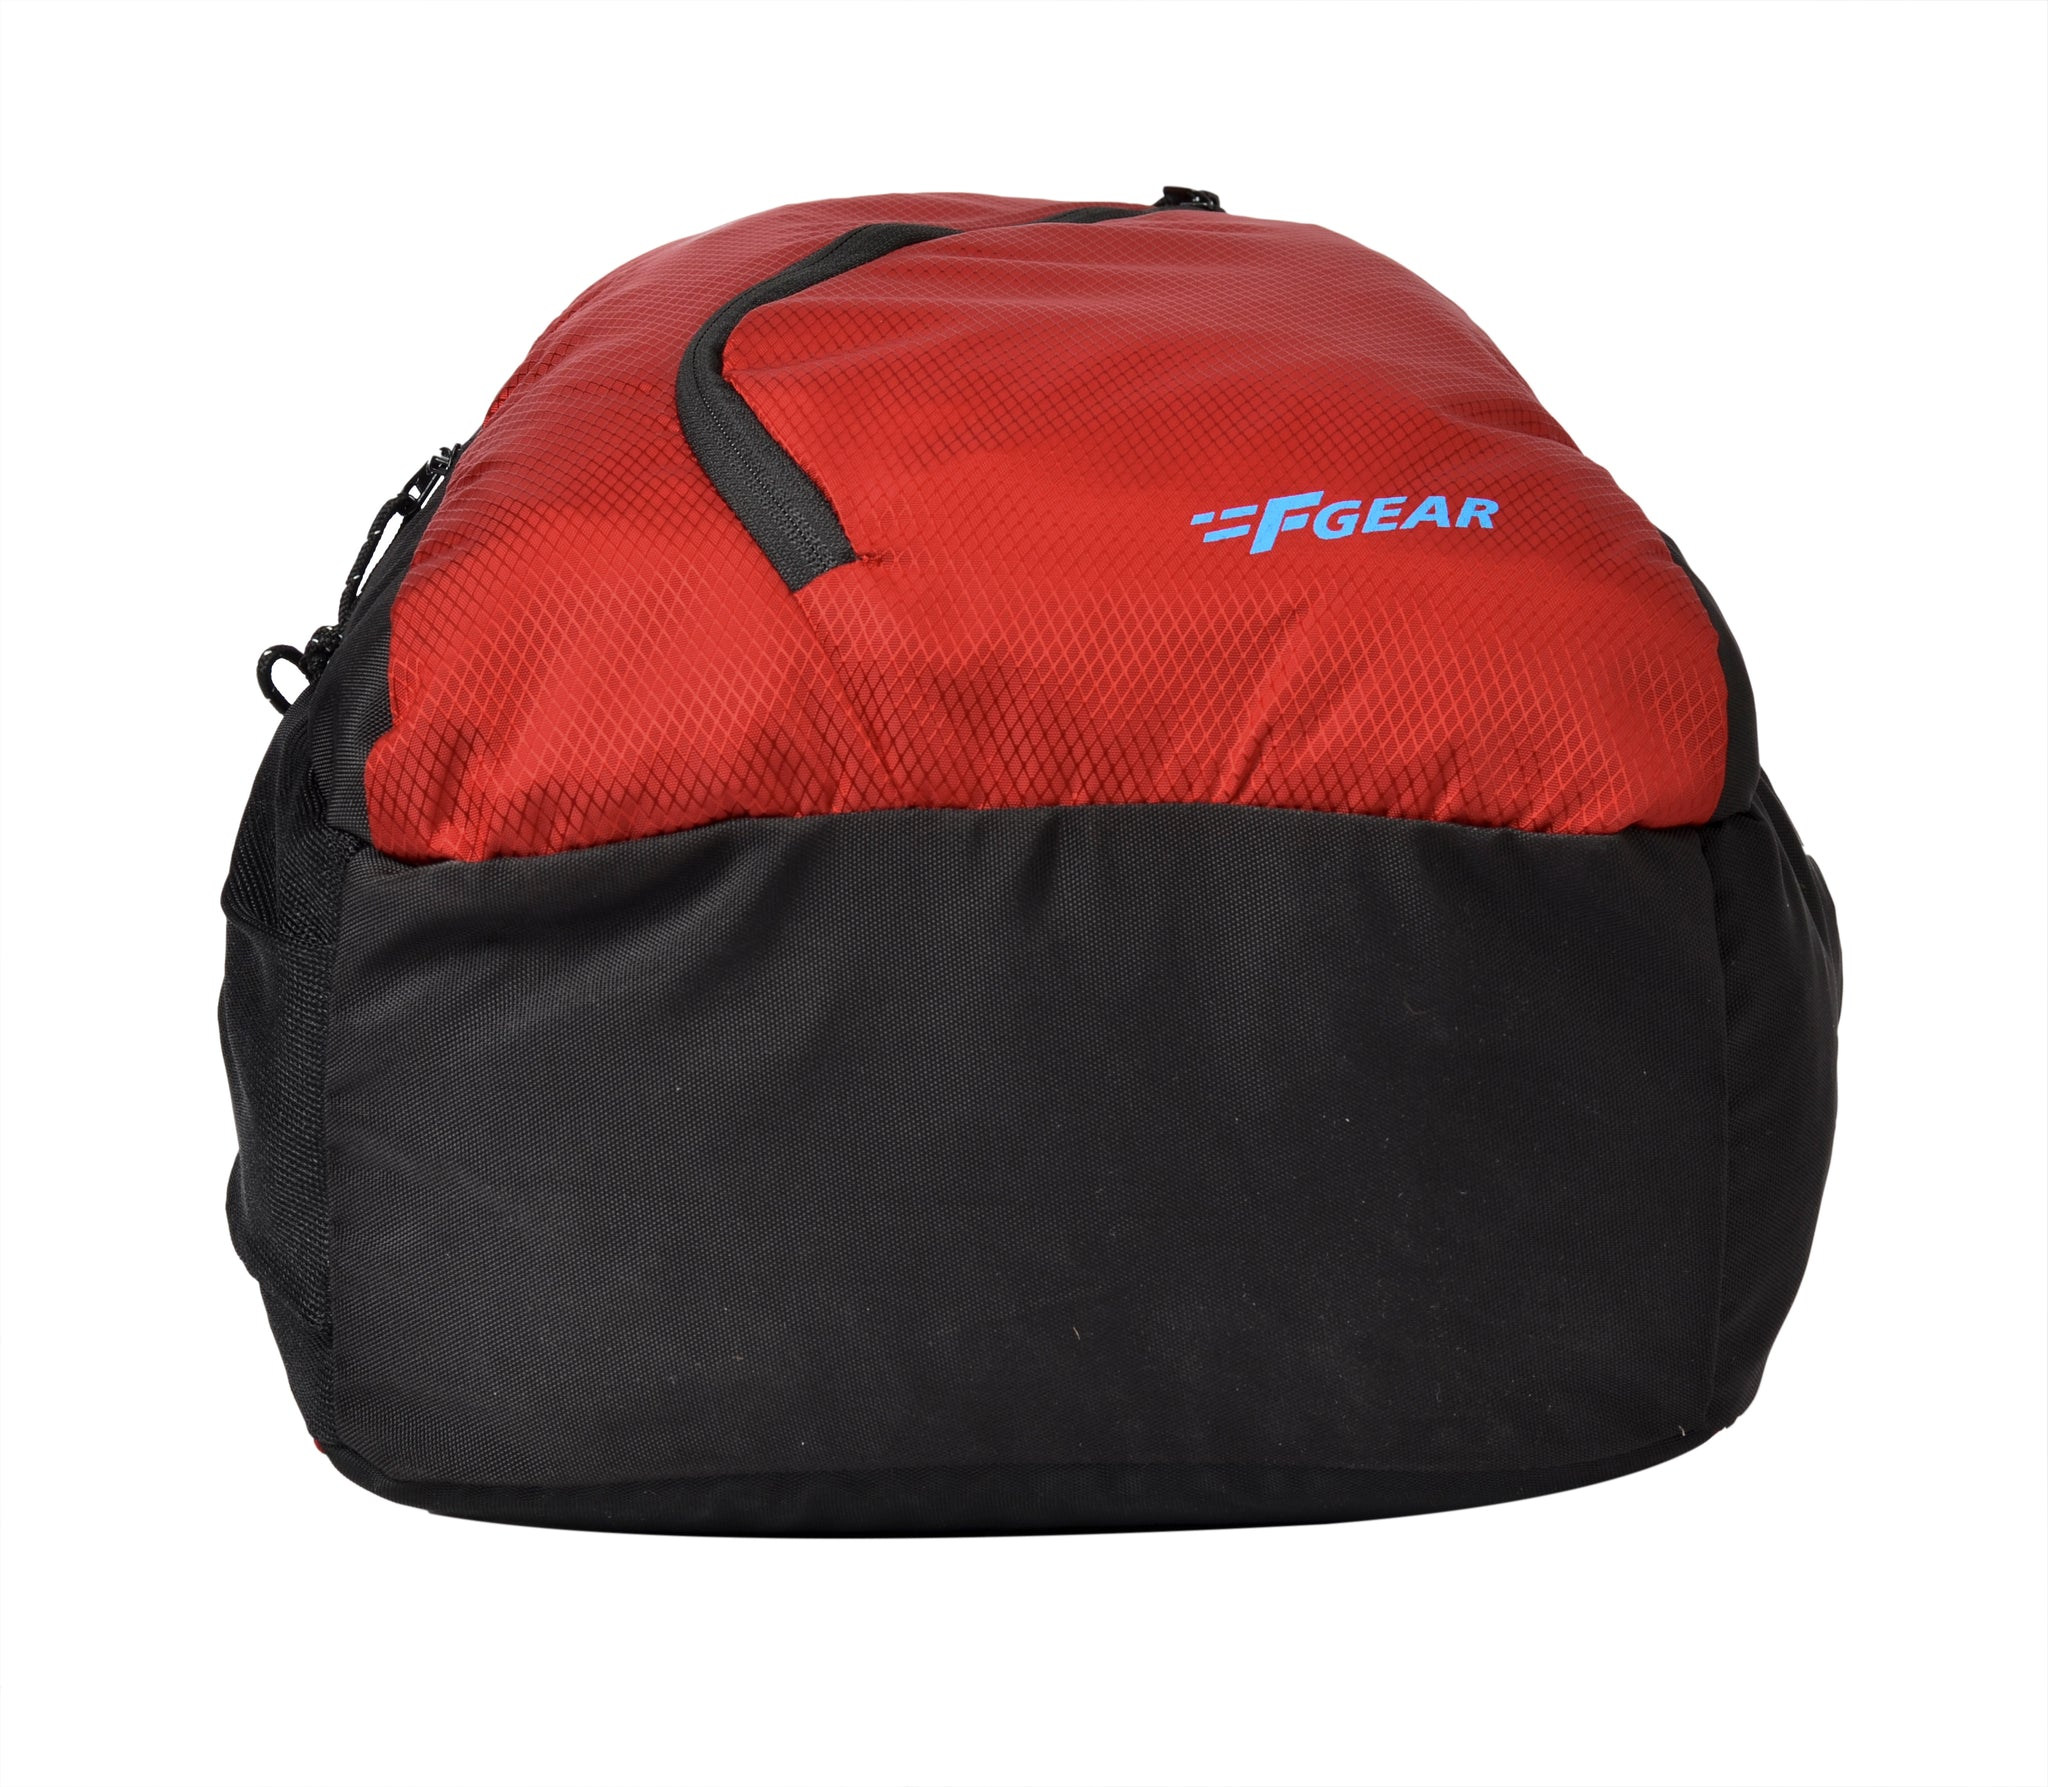 F Gear Borealis 25 Liters Backpack (Red Diamond, Black Guc)